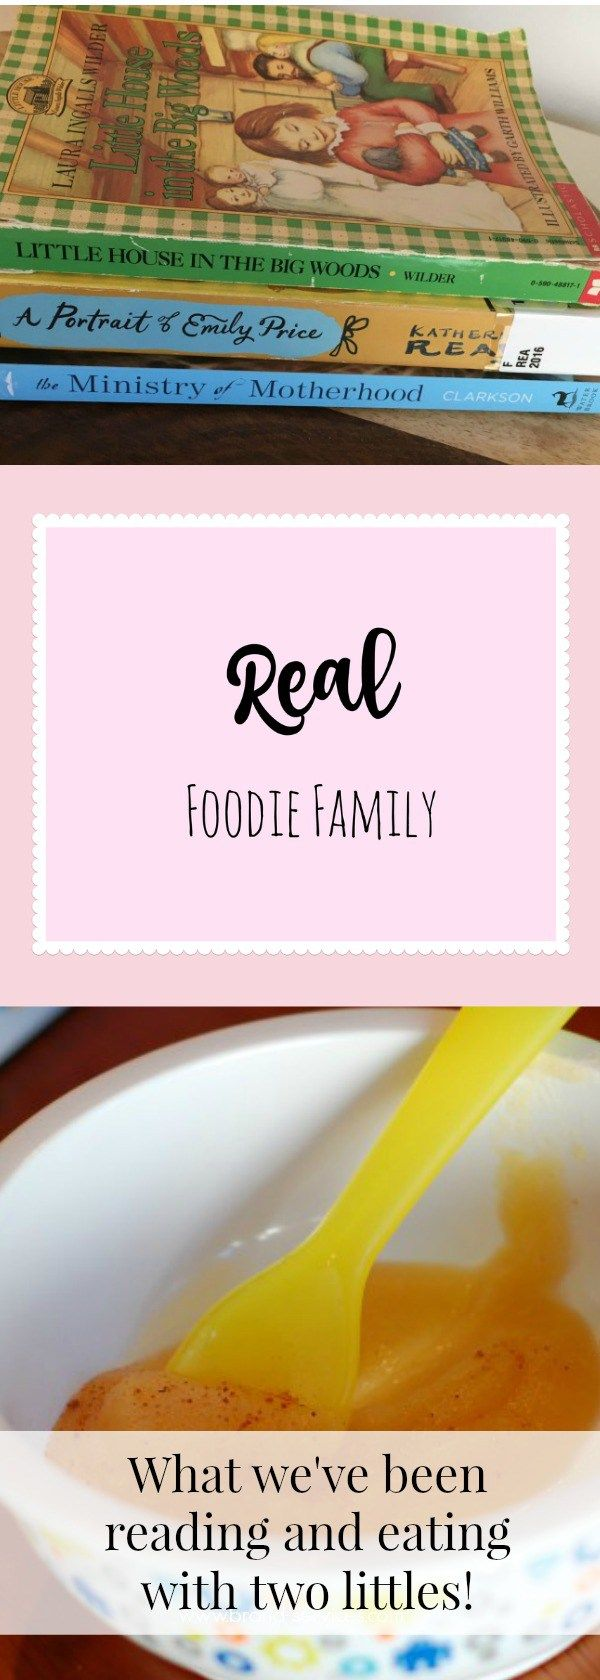 My favorite reads and snacks this winter with littles. | Real Foodie Family